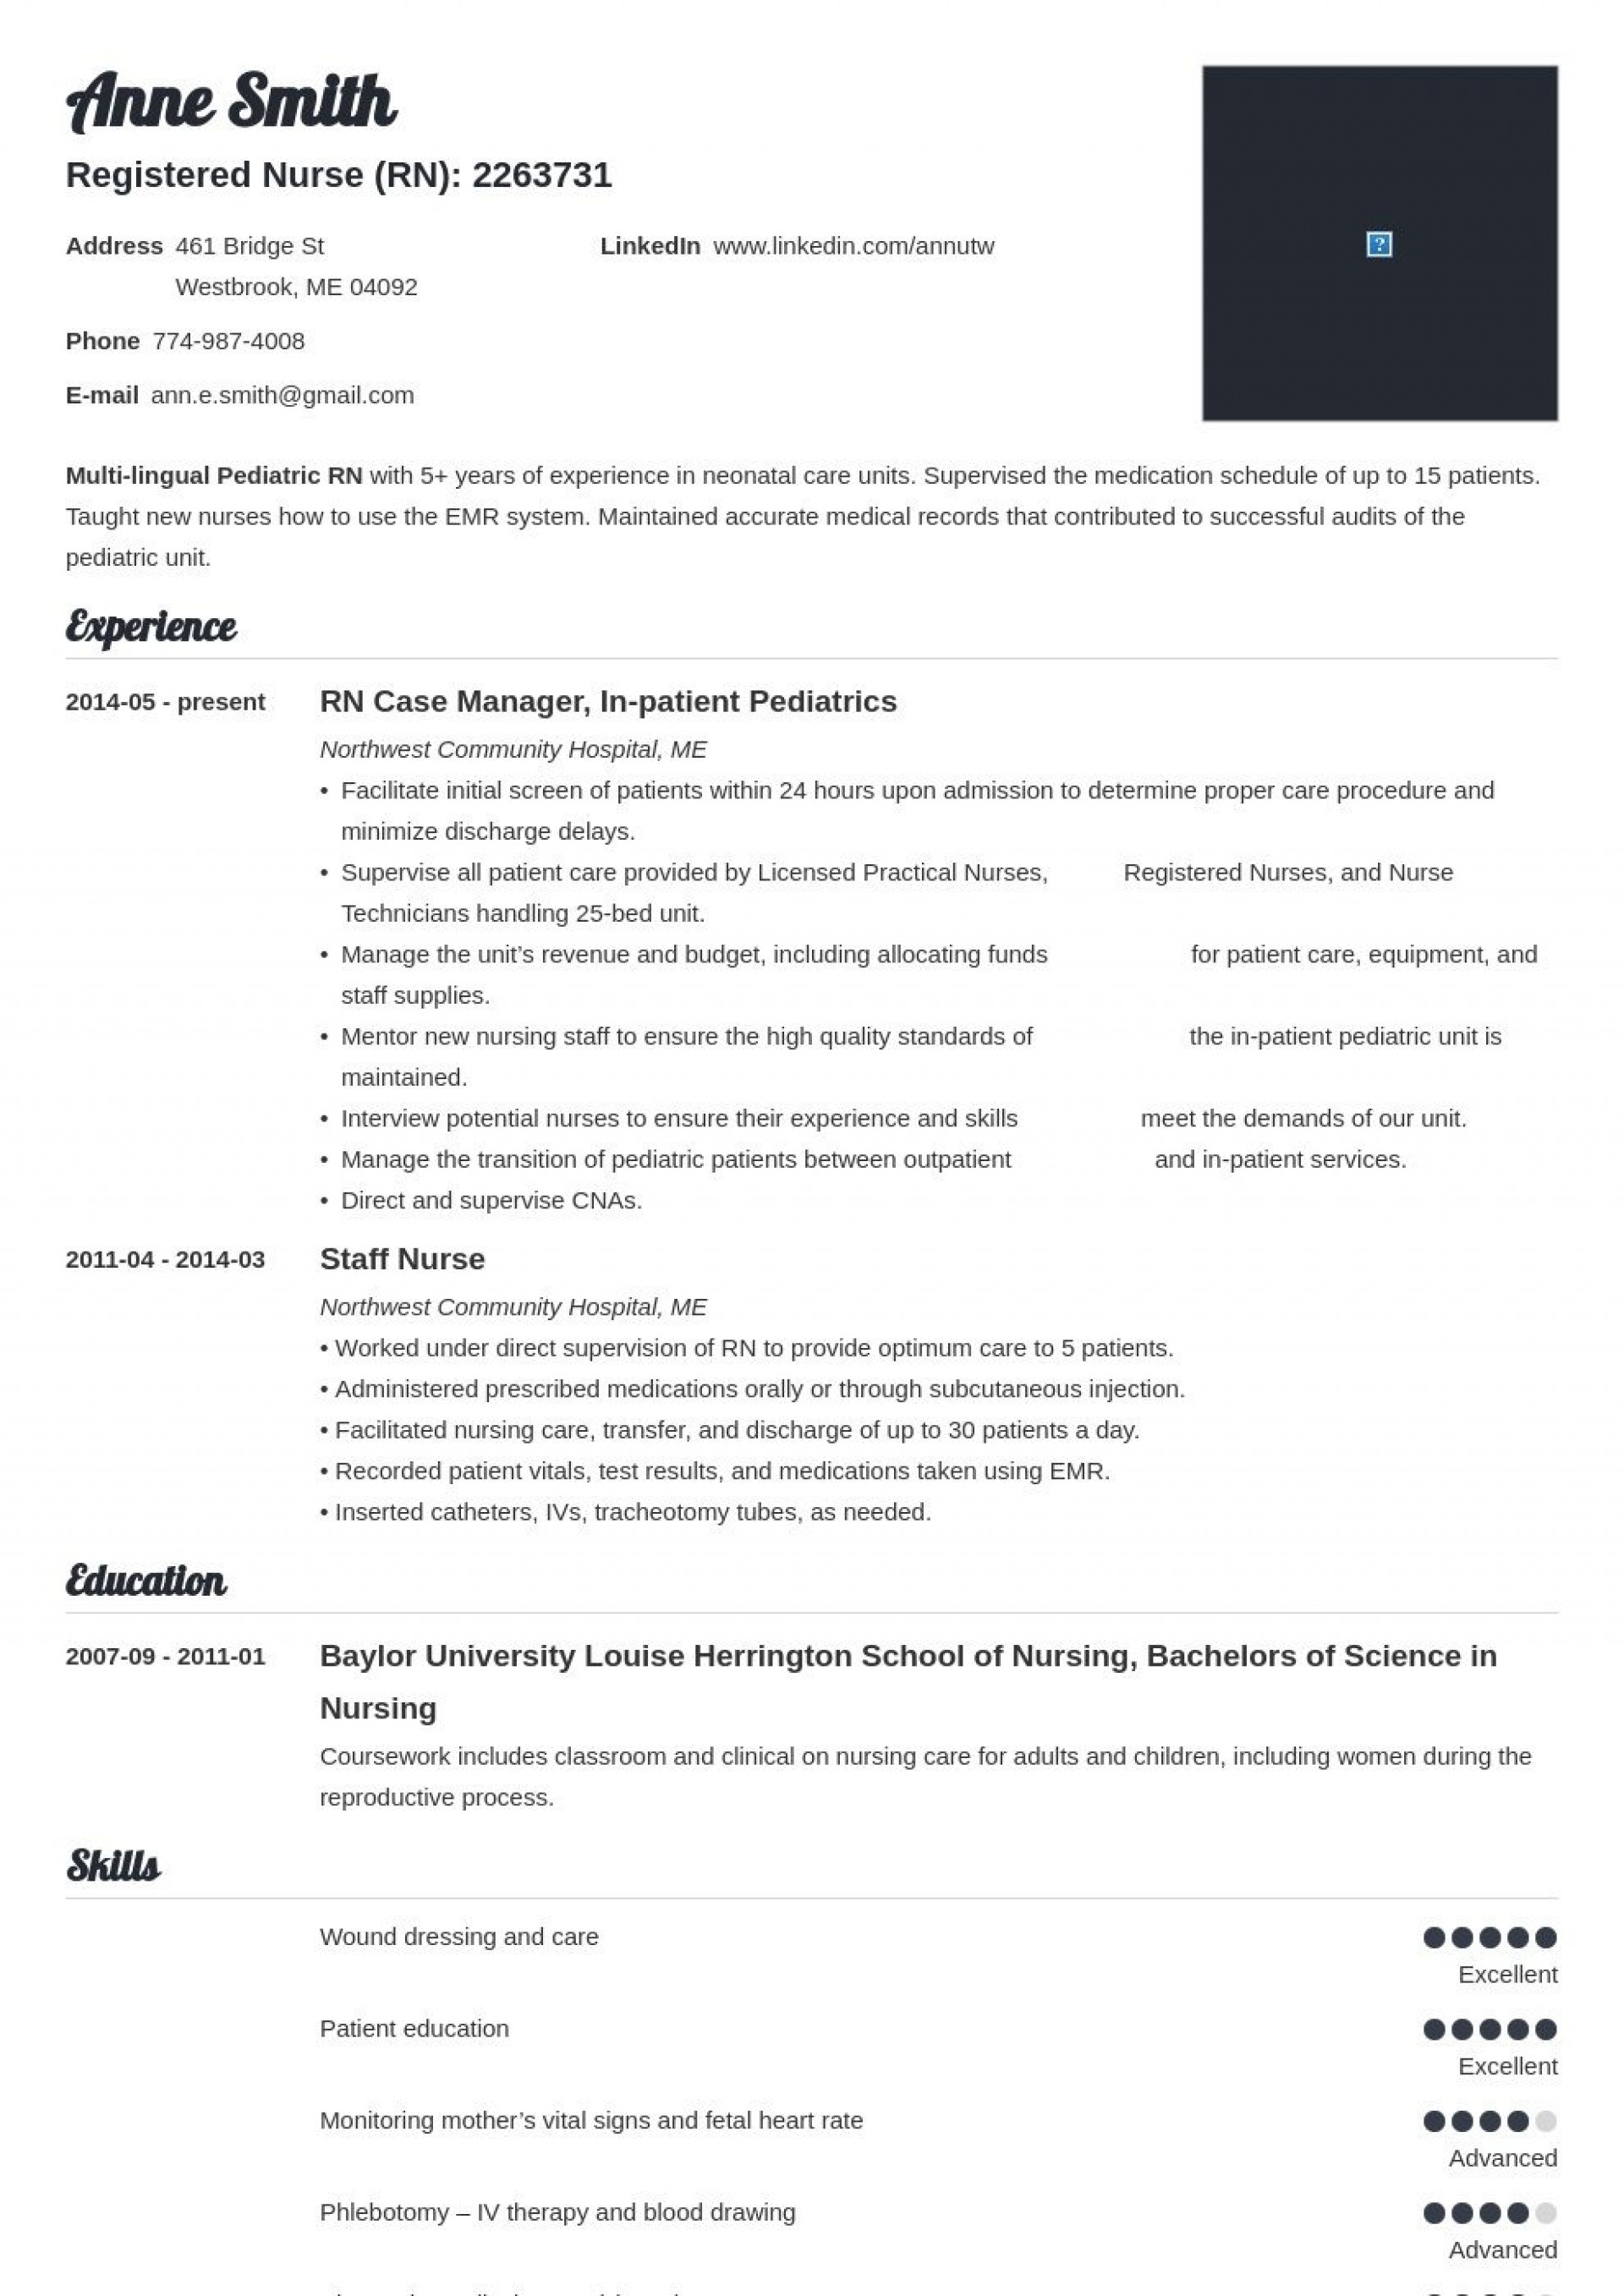 004 Striking Nurse Resume Template Free Design  Graduate Rn1920